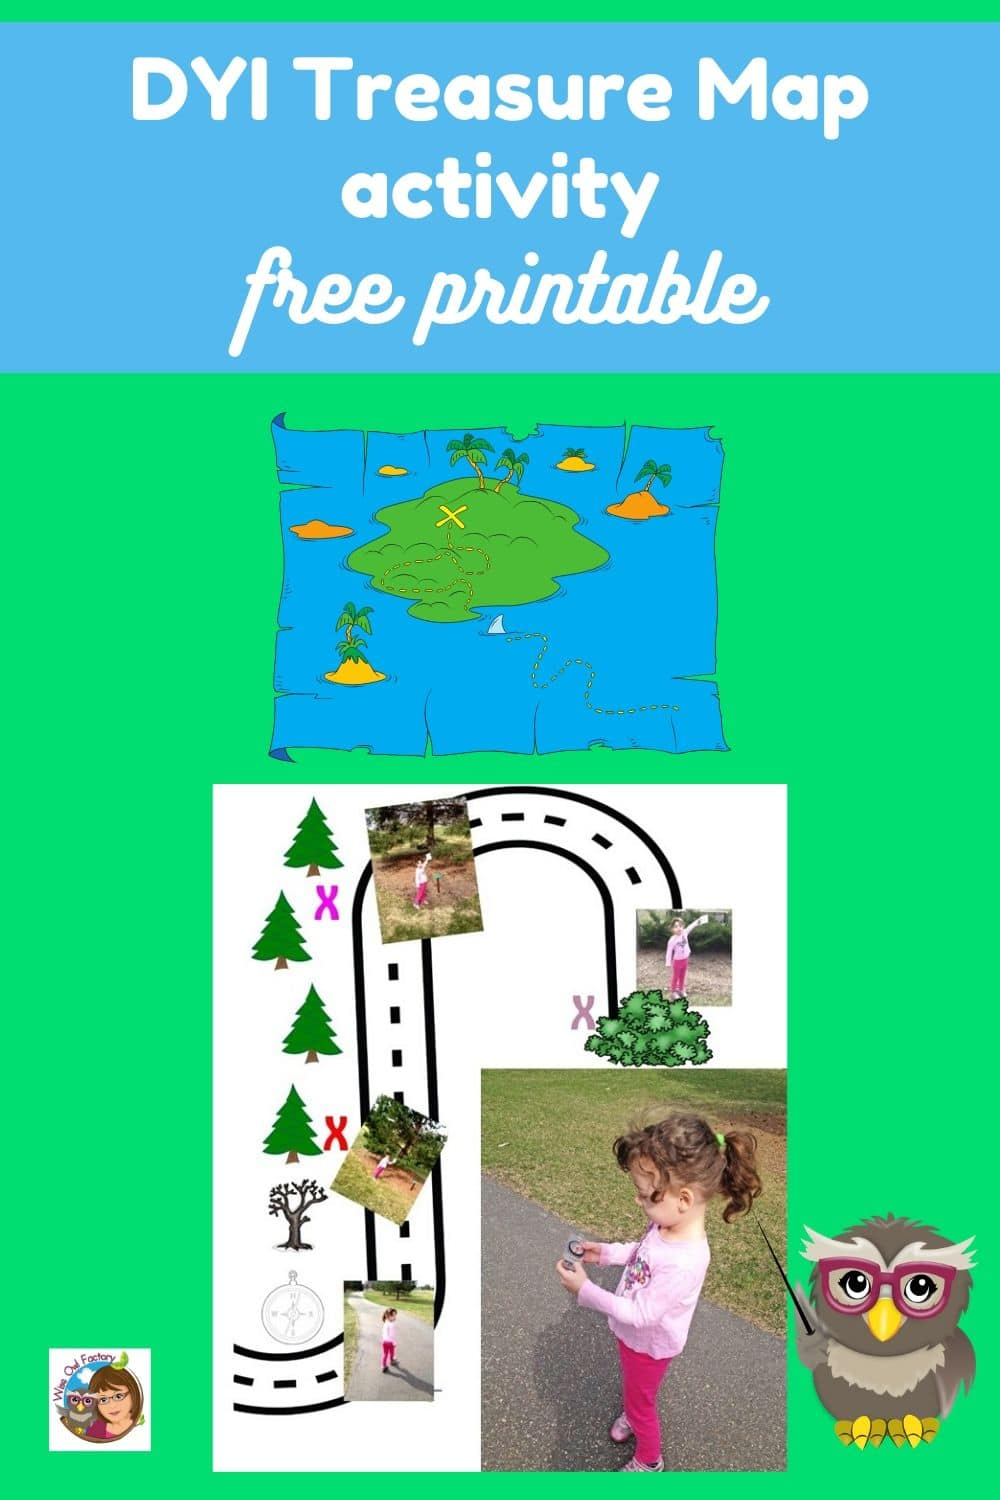 DIY Map Skills Treasure Hunt and Free PDF -- Activities for home and outdoors with free printable PDF to help create DIY maps.